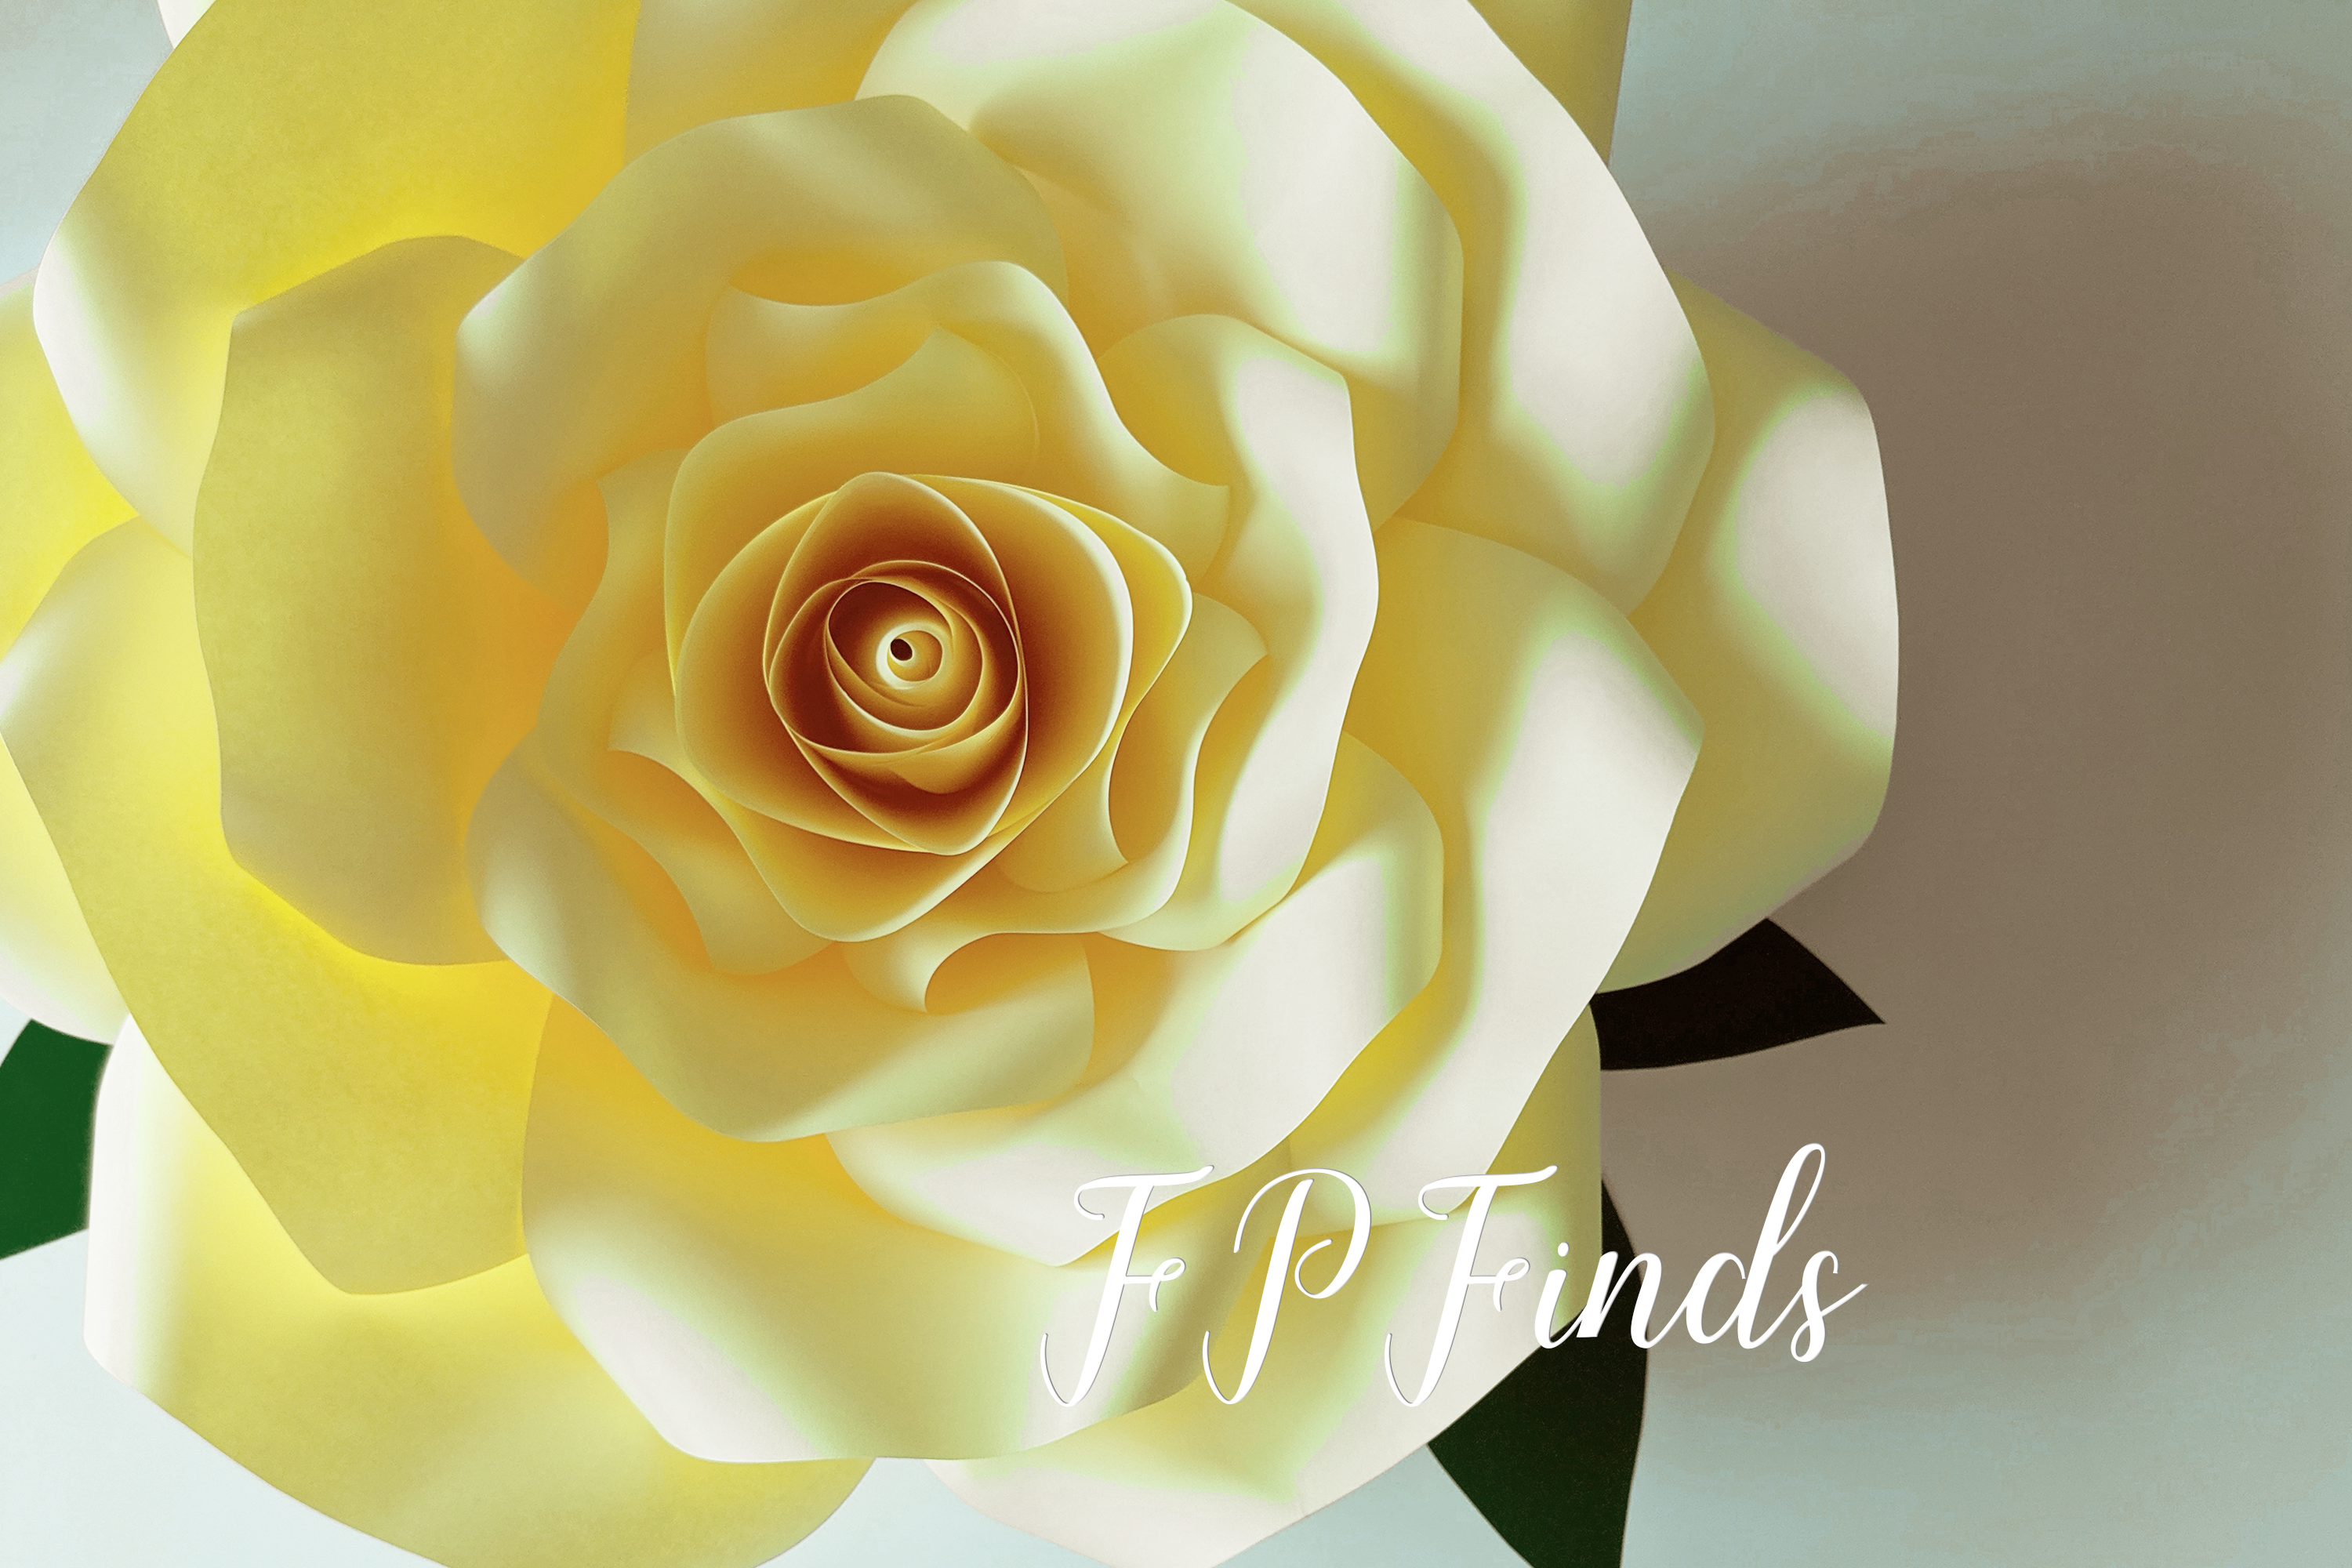 Giant Paper Rose Templates, Bundle of 4 example image 2